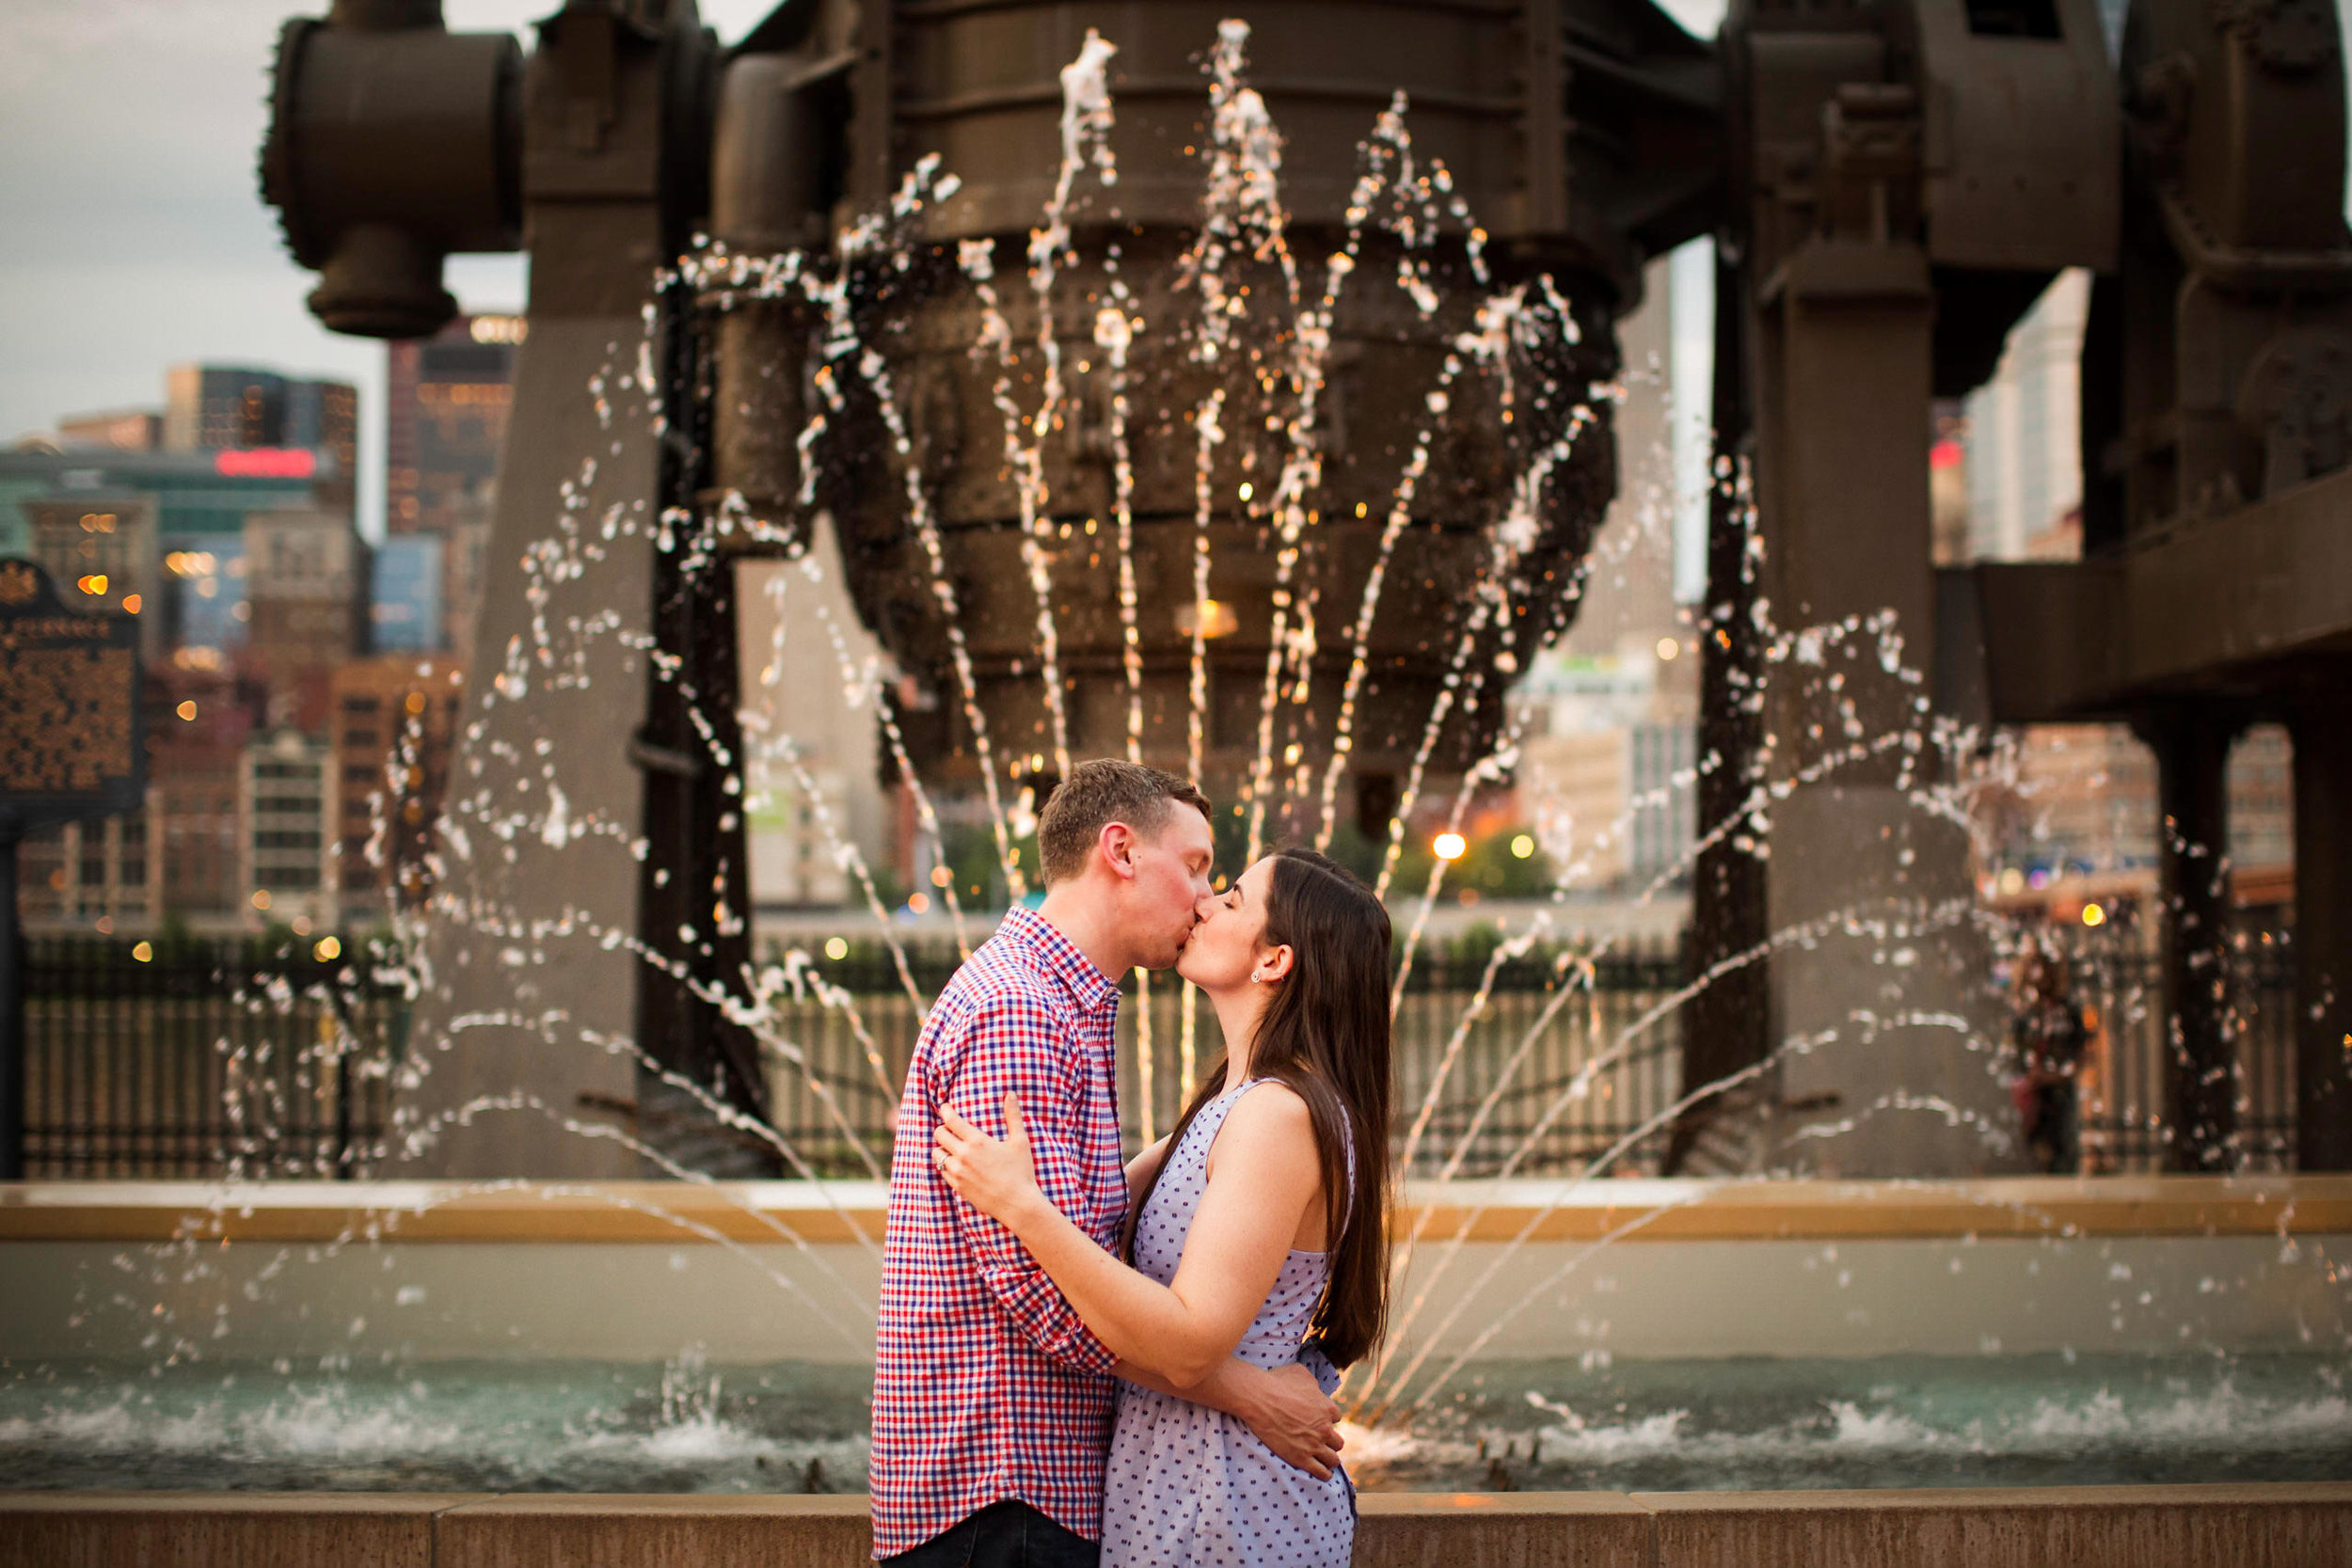 Station Square Duquesne Incline Wedding Engagement Picture locations-10.jpg